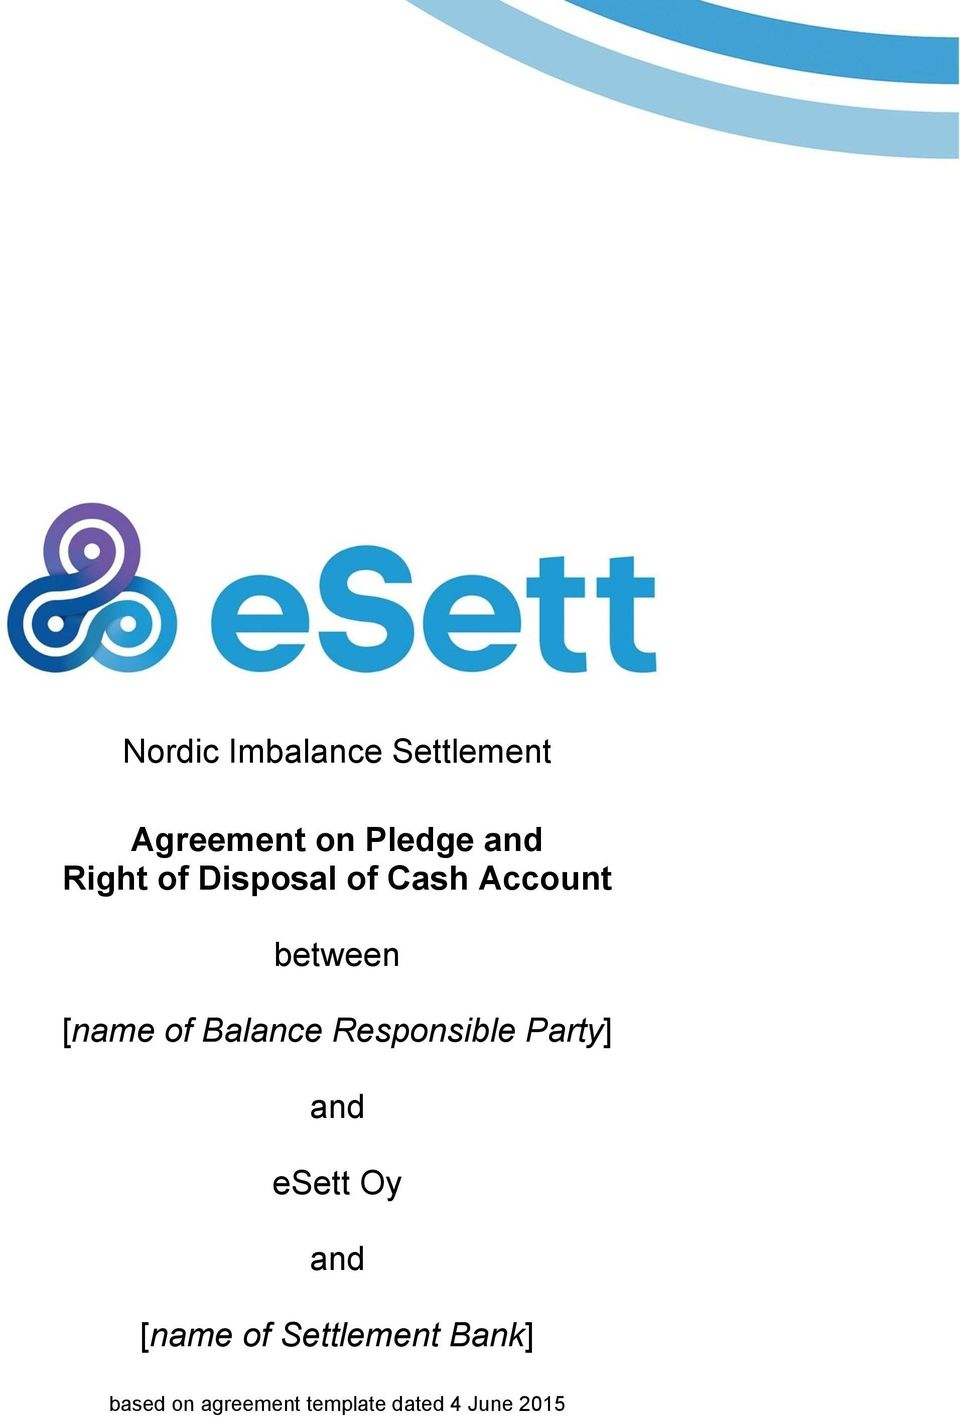 Balance Responsible Party] and esett Oy and [name of